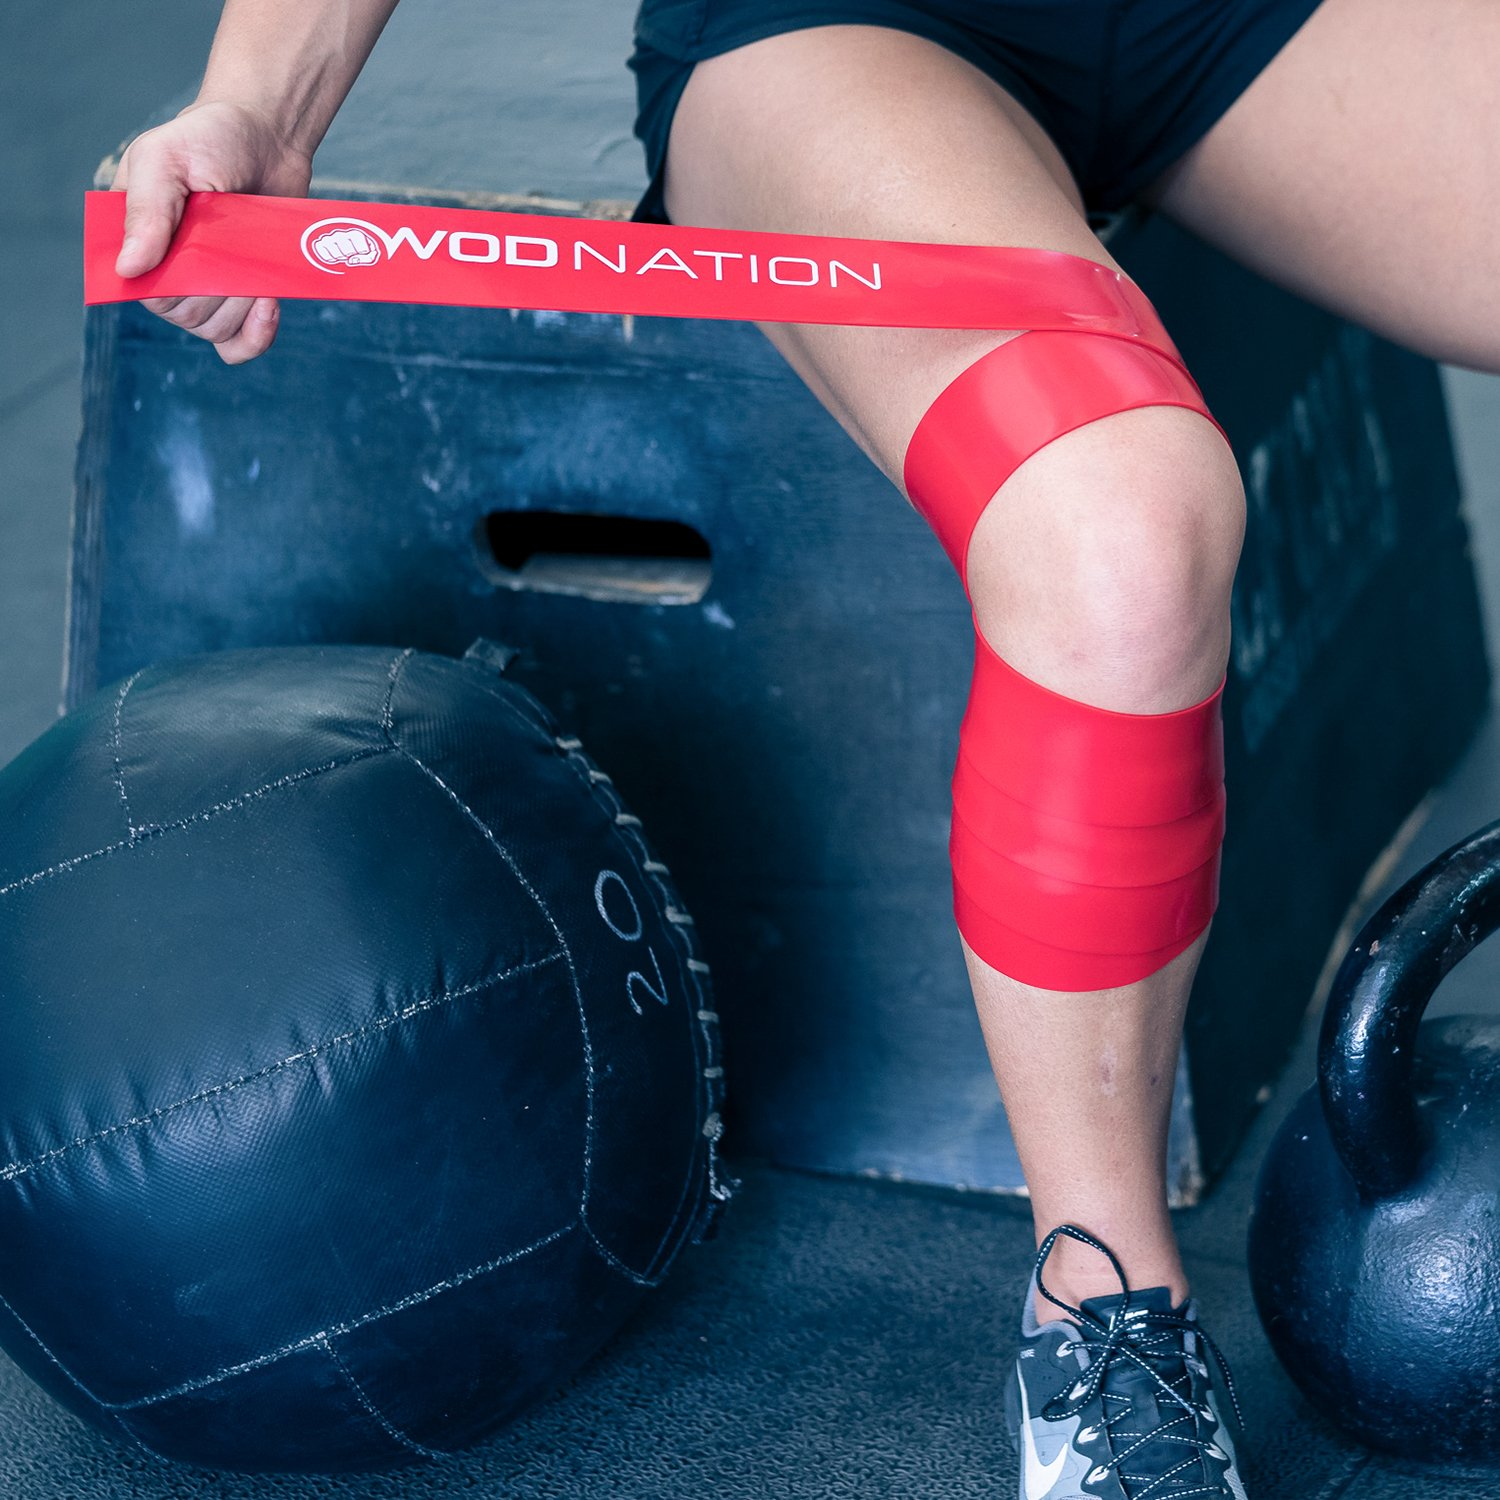 b5fa2c0045828b ... Recovery Band for Tack and Flossing Sore Muscles and Increasing  Mobility - Stretch Band Includes Carrying Case (1 Black & 1 Red) : Sports &  Outdoors